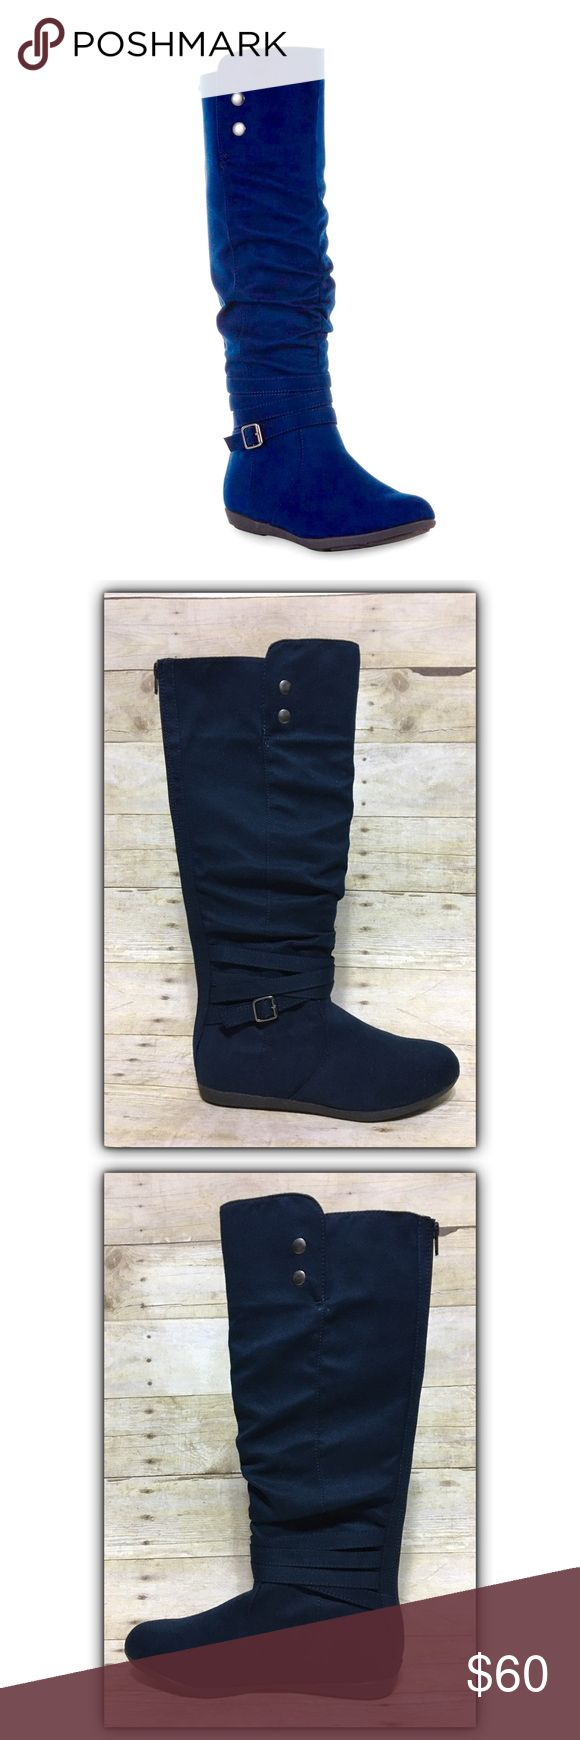 Gorgeous navy slouchy faux suede tall riding boot Gorgeous navy slouchy faux suede tall riding boot, sz. 7. Bundle discounts available! Sorry no trades 😊 Instagram: dejavuapparel Pinterest: dejavuapparel  Twitter: _dejavuapparel  UB2C Shoes Combat & Moto Boots